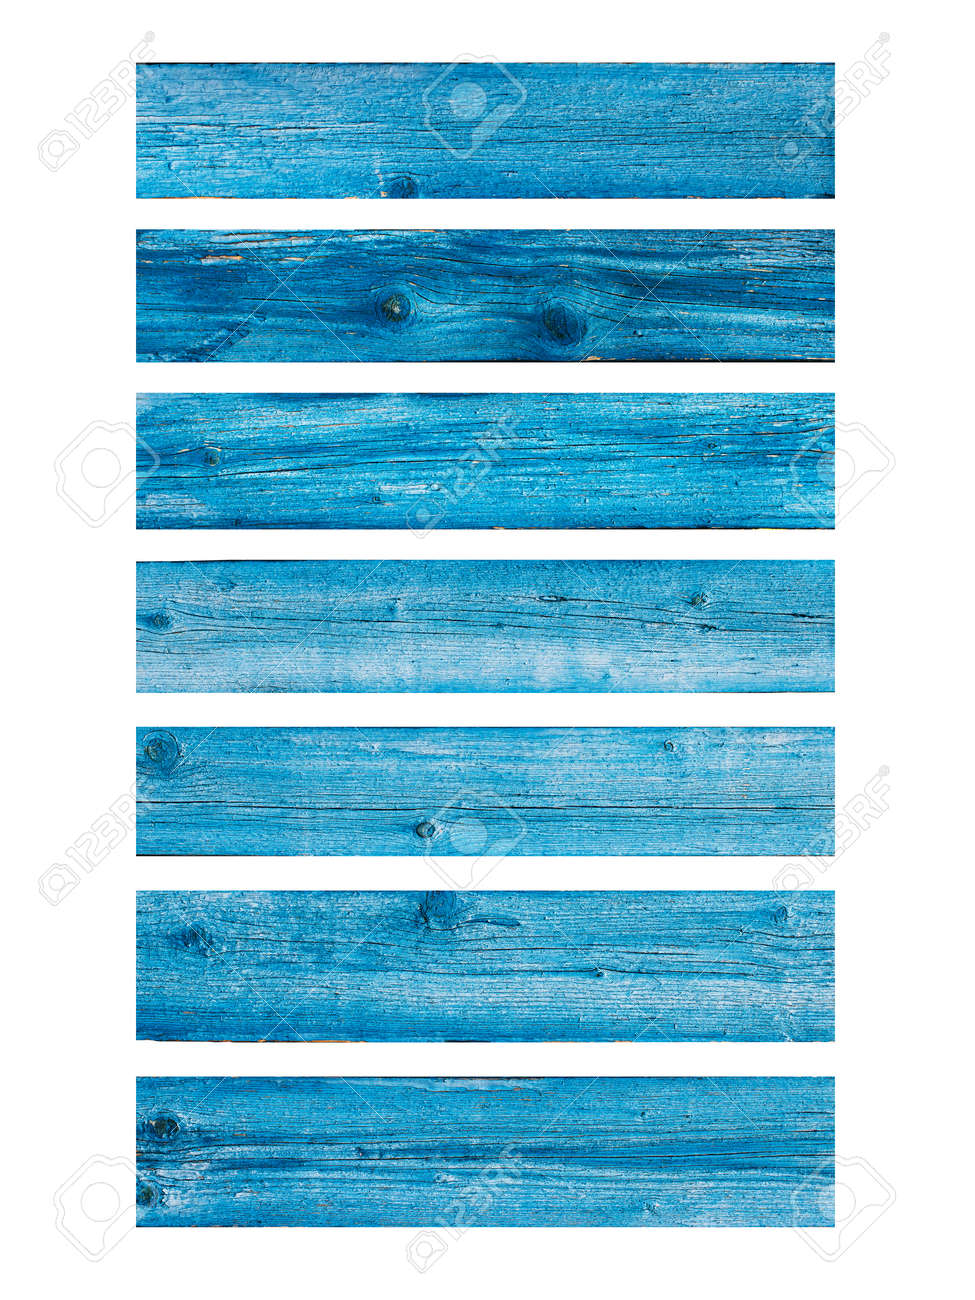 Wooden planks texture. Shabby chic background. - 163800789